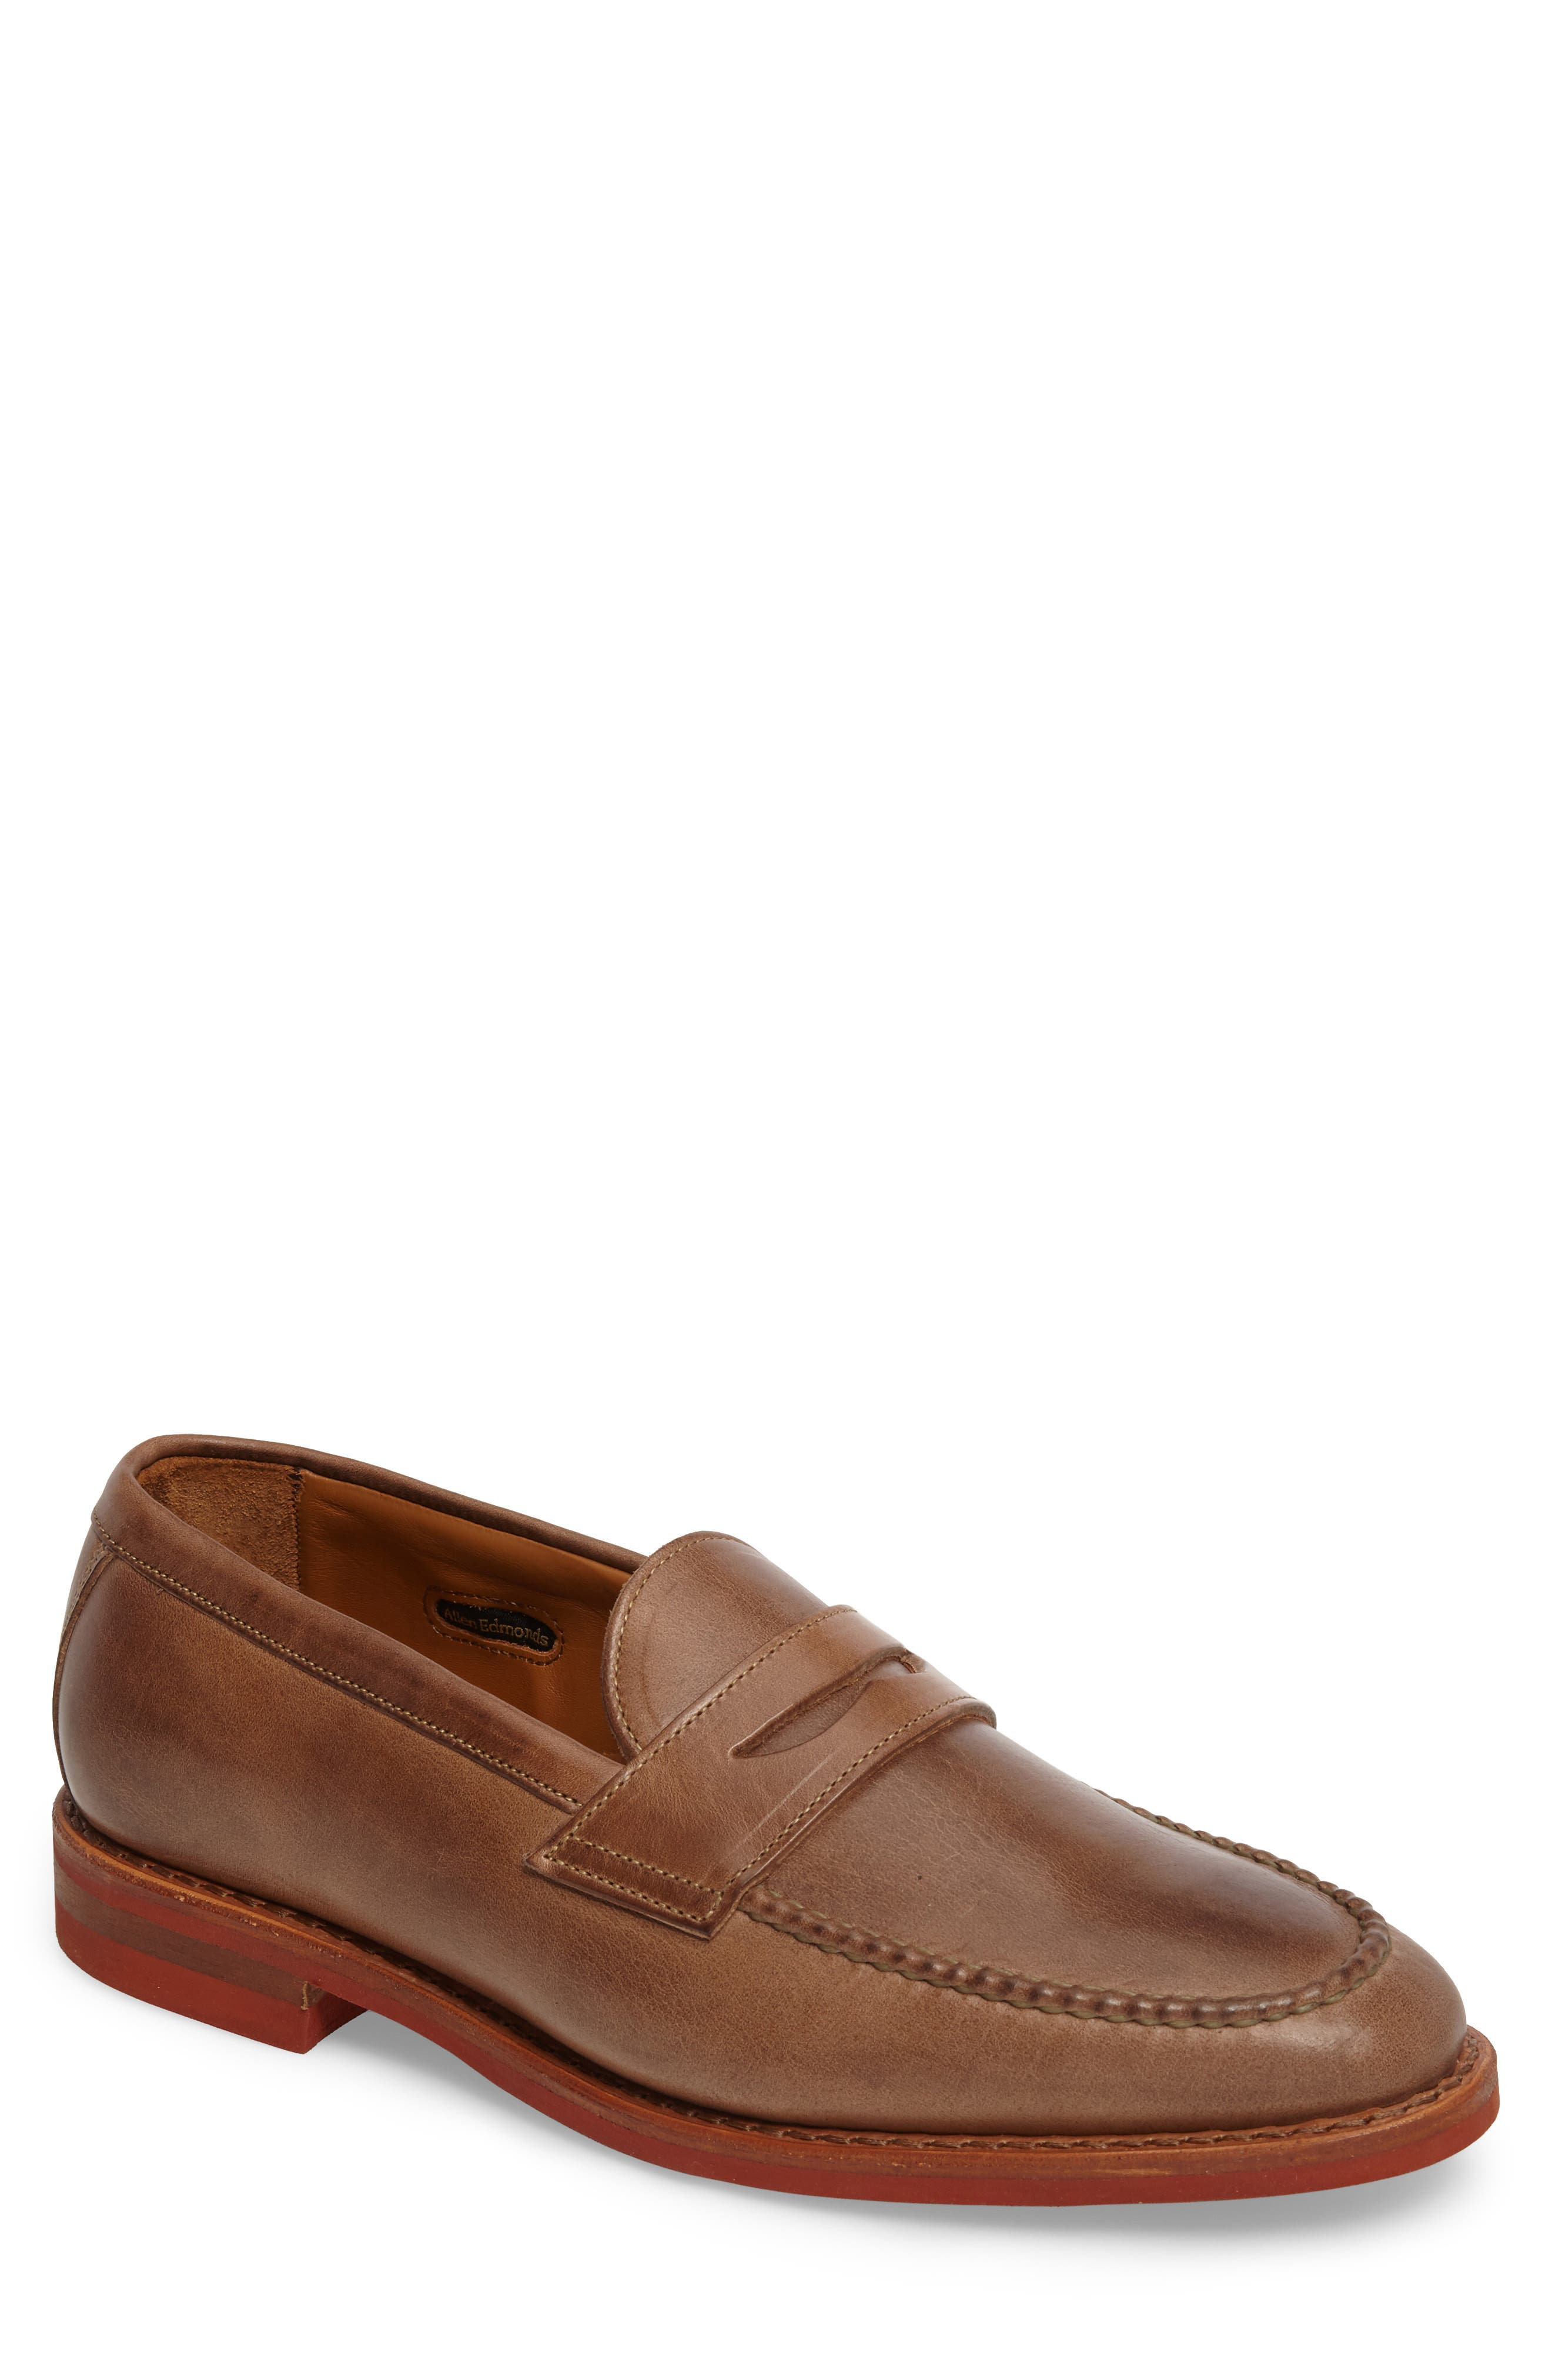 Addison Penny Loafer, Main, color, 200